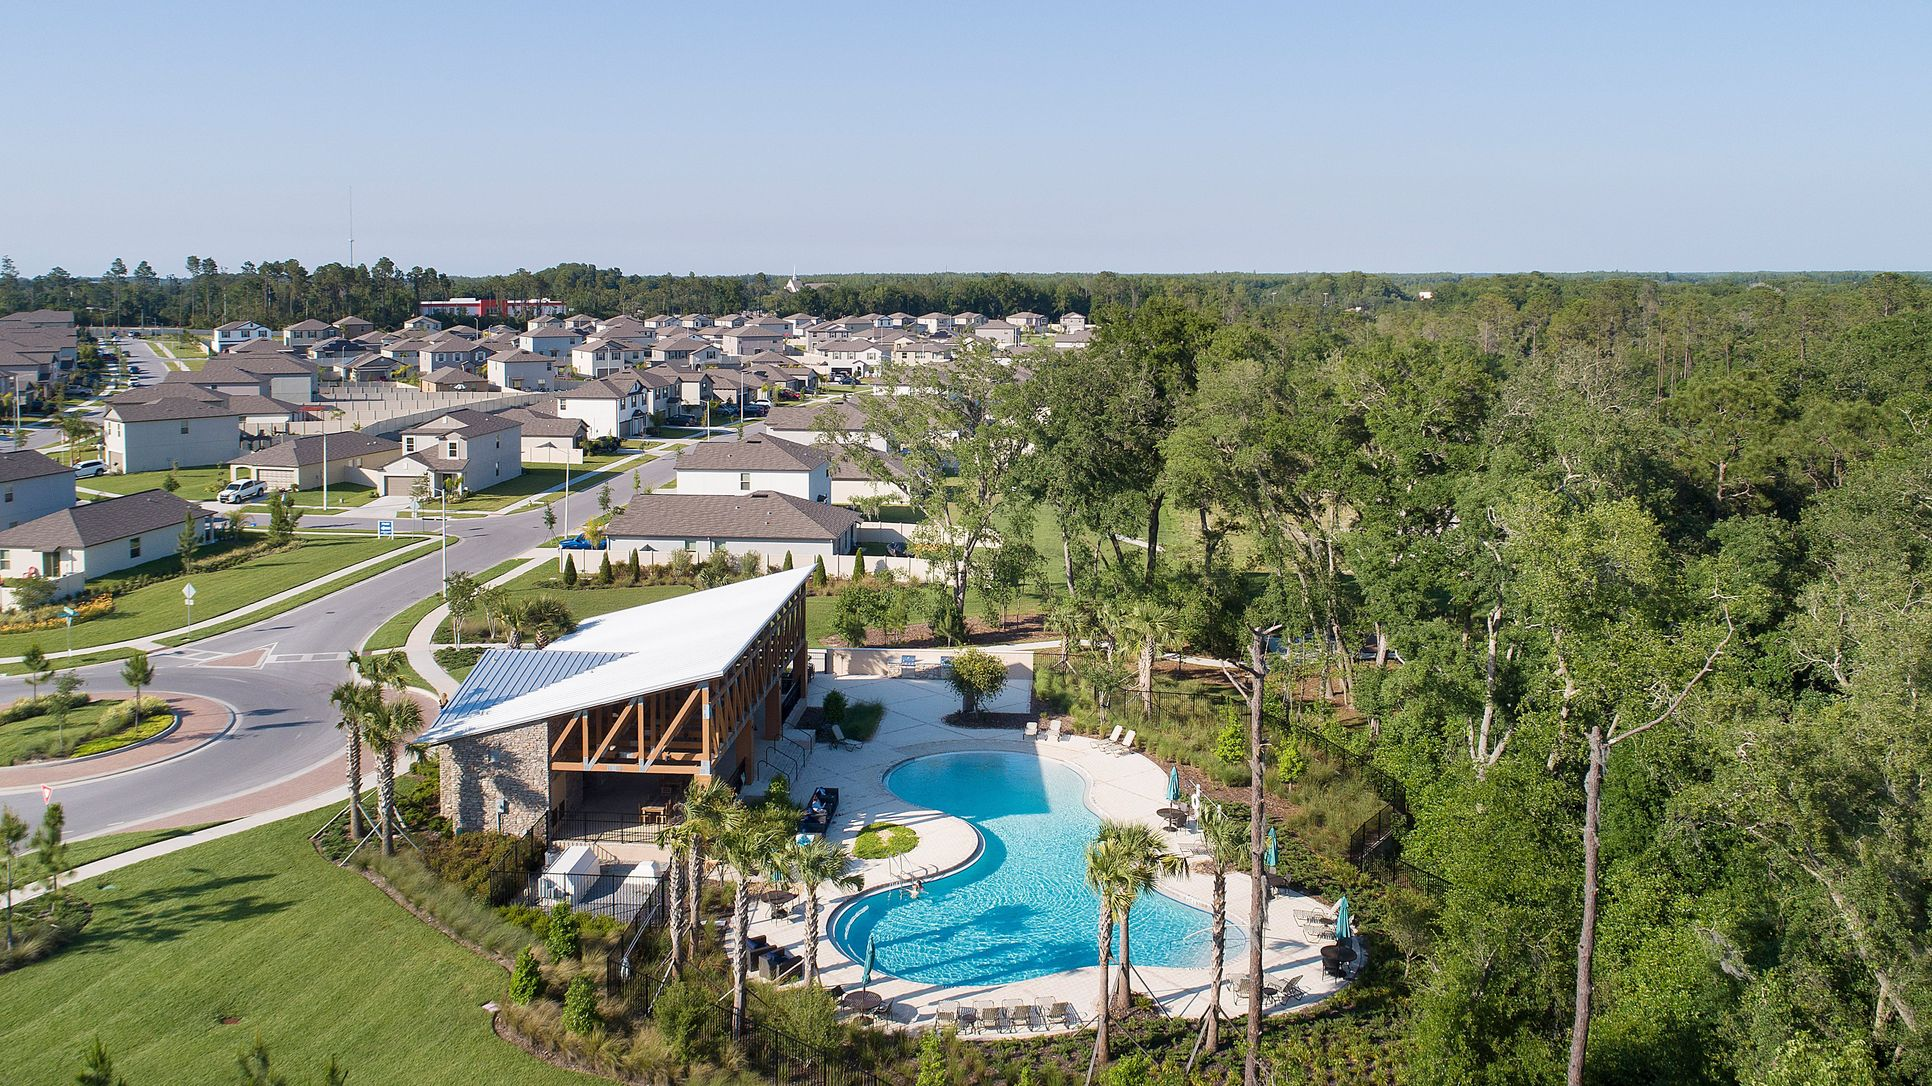 Copperspring swimming pool